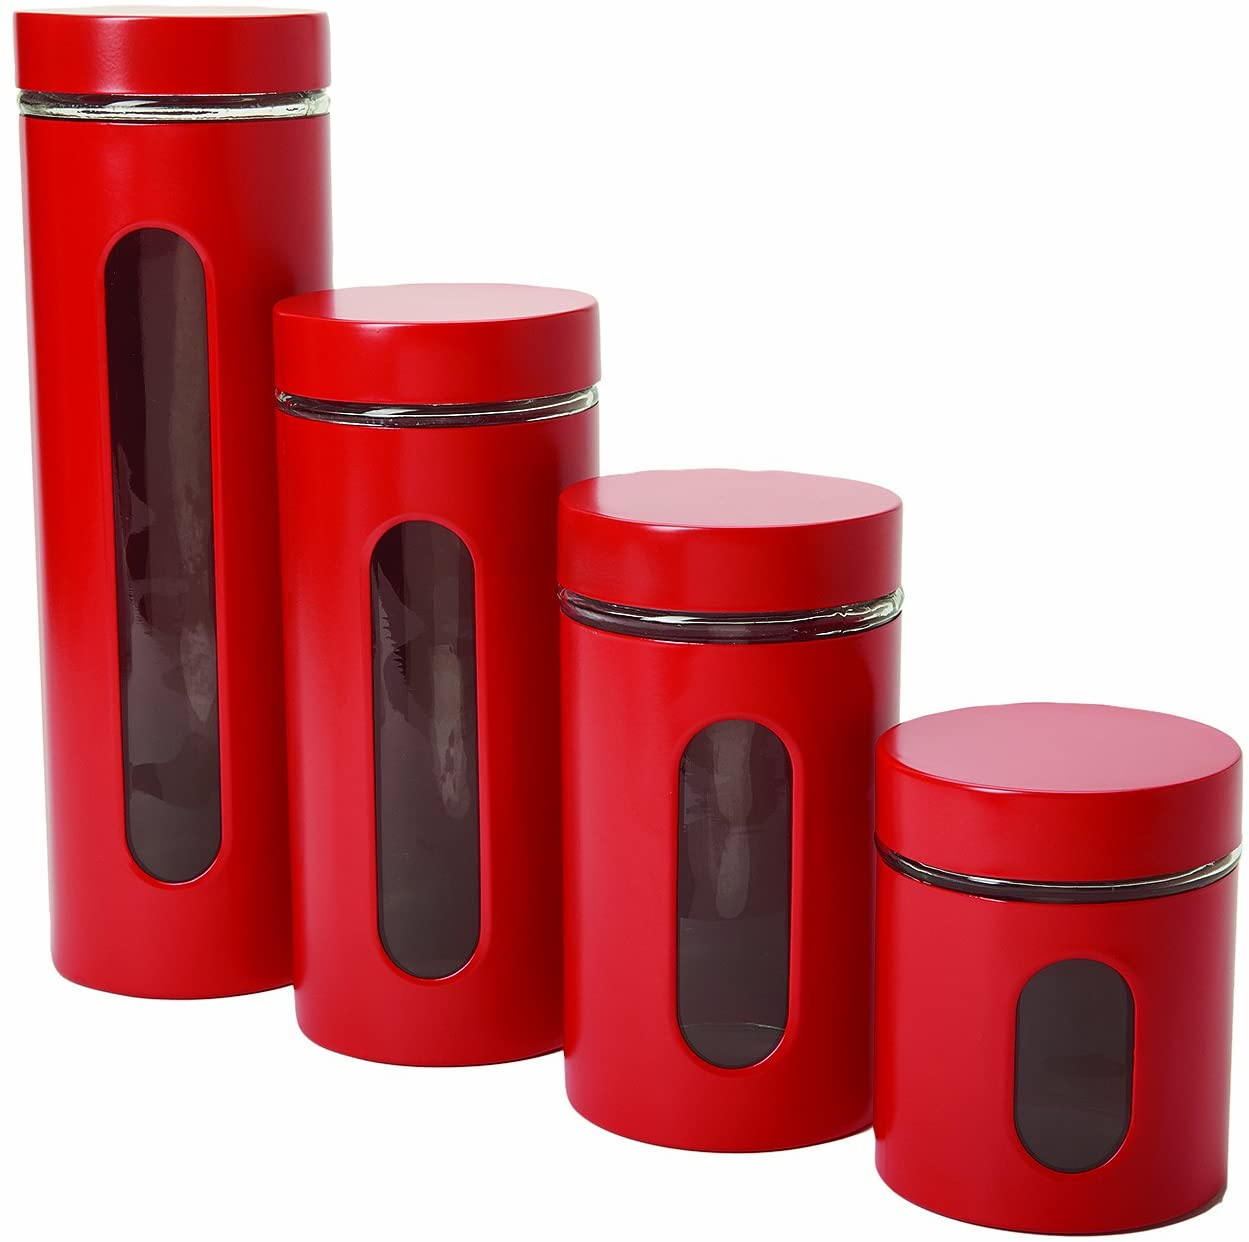 Anchor Hocking Palladian Window Cylinder Jars, Mixed Sizes, Cherry, Set of 4: Kitchen Storage And Organization Product Sets: Kitchen & Dining